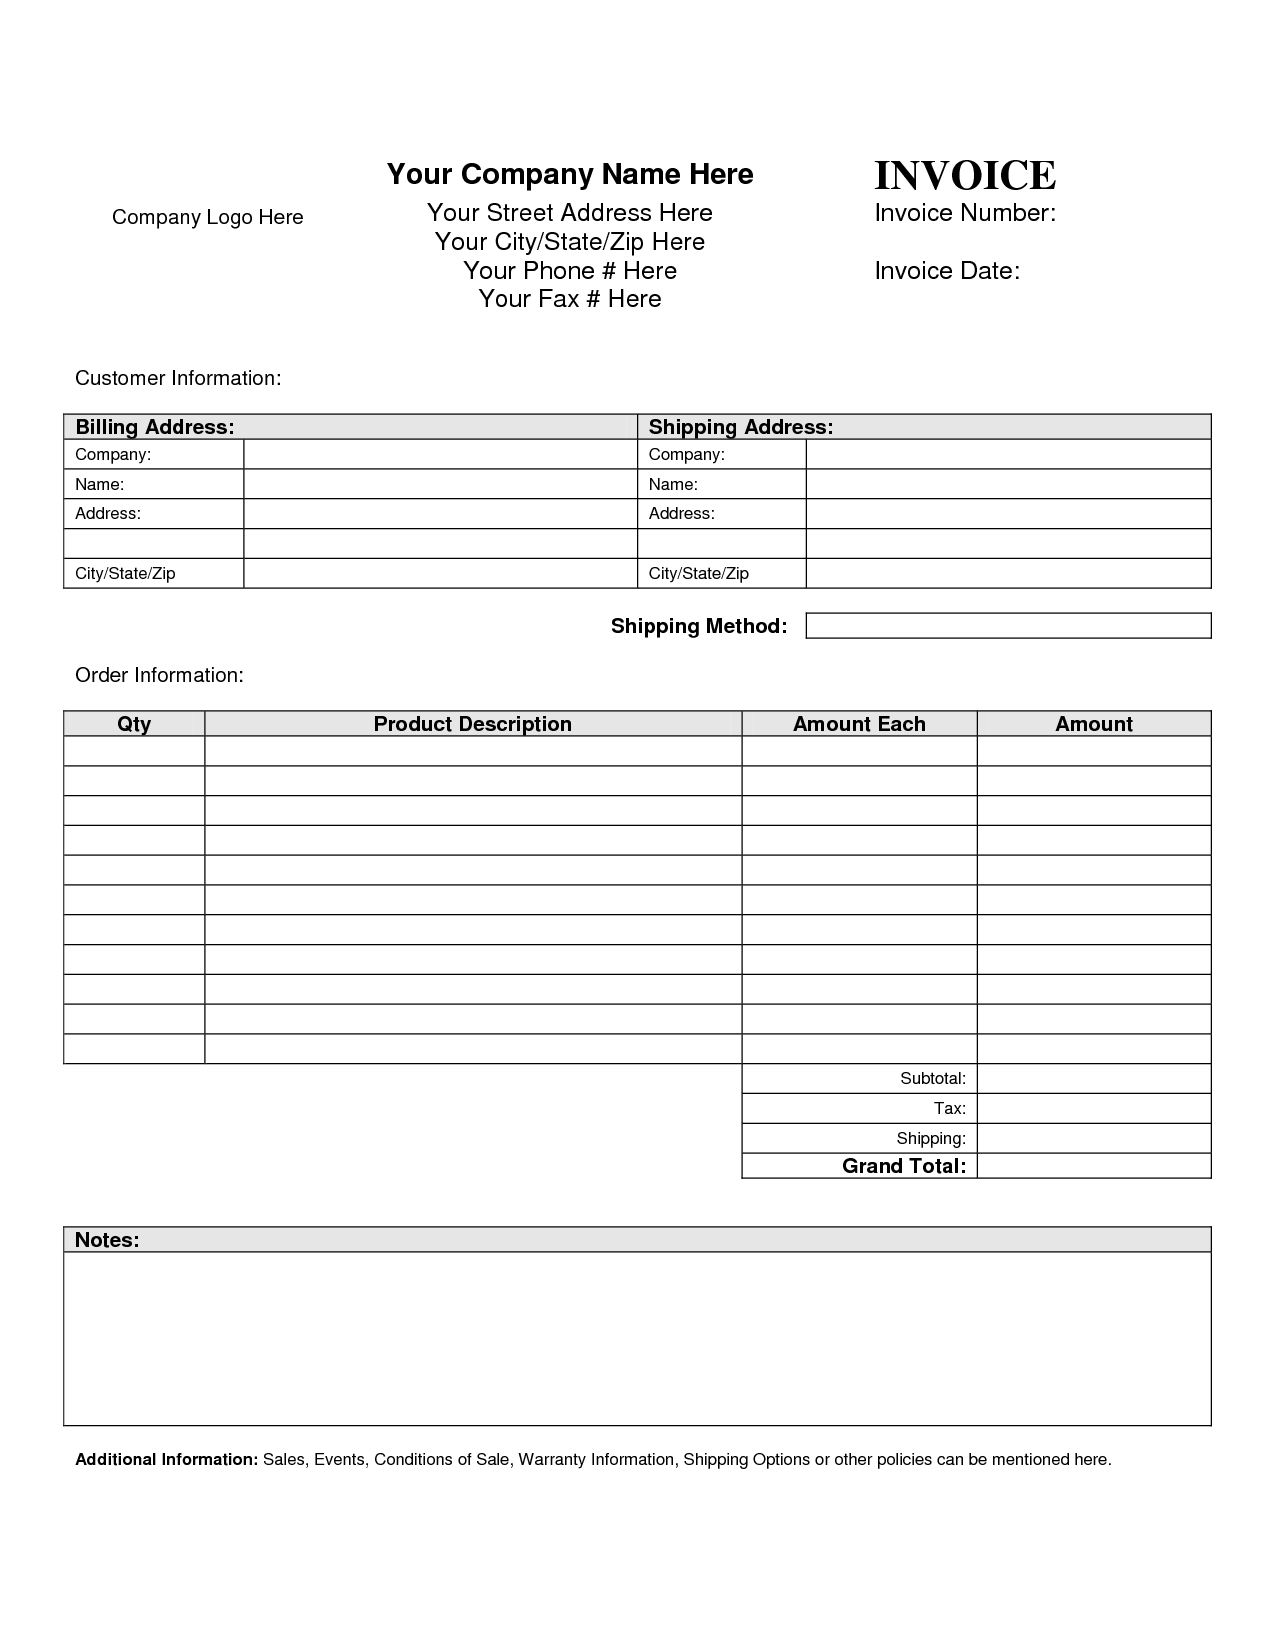 template of invoice invoice receipt template software development art hospitality 1275 X 1650